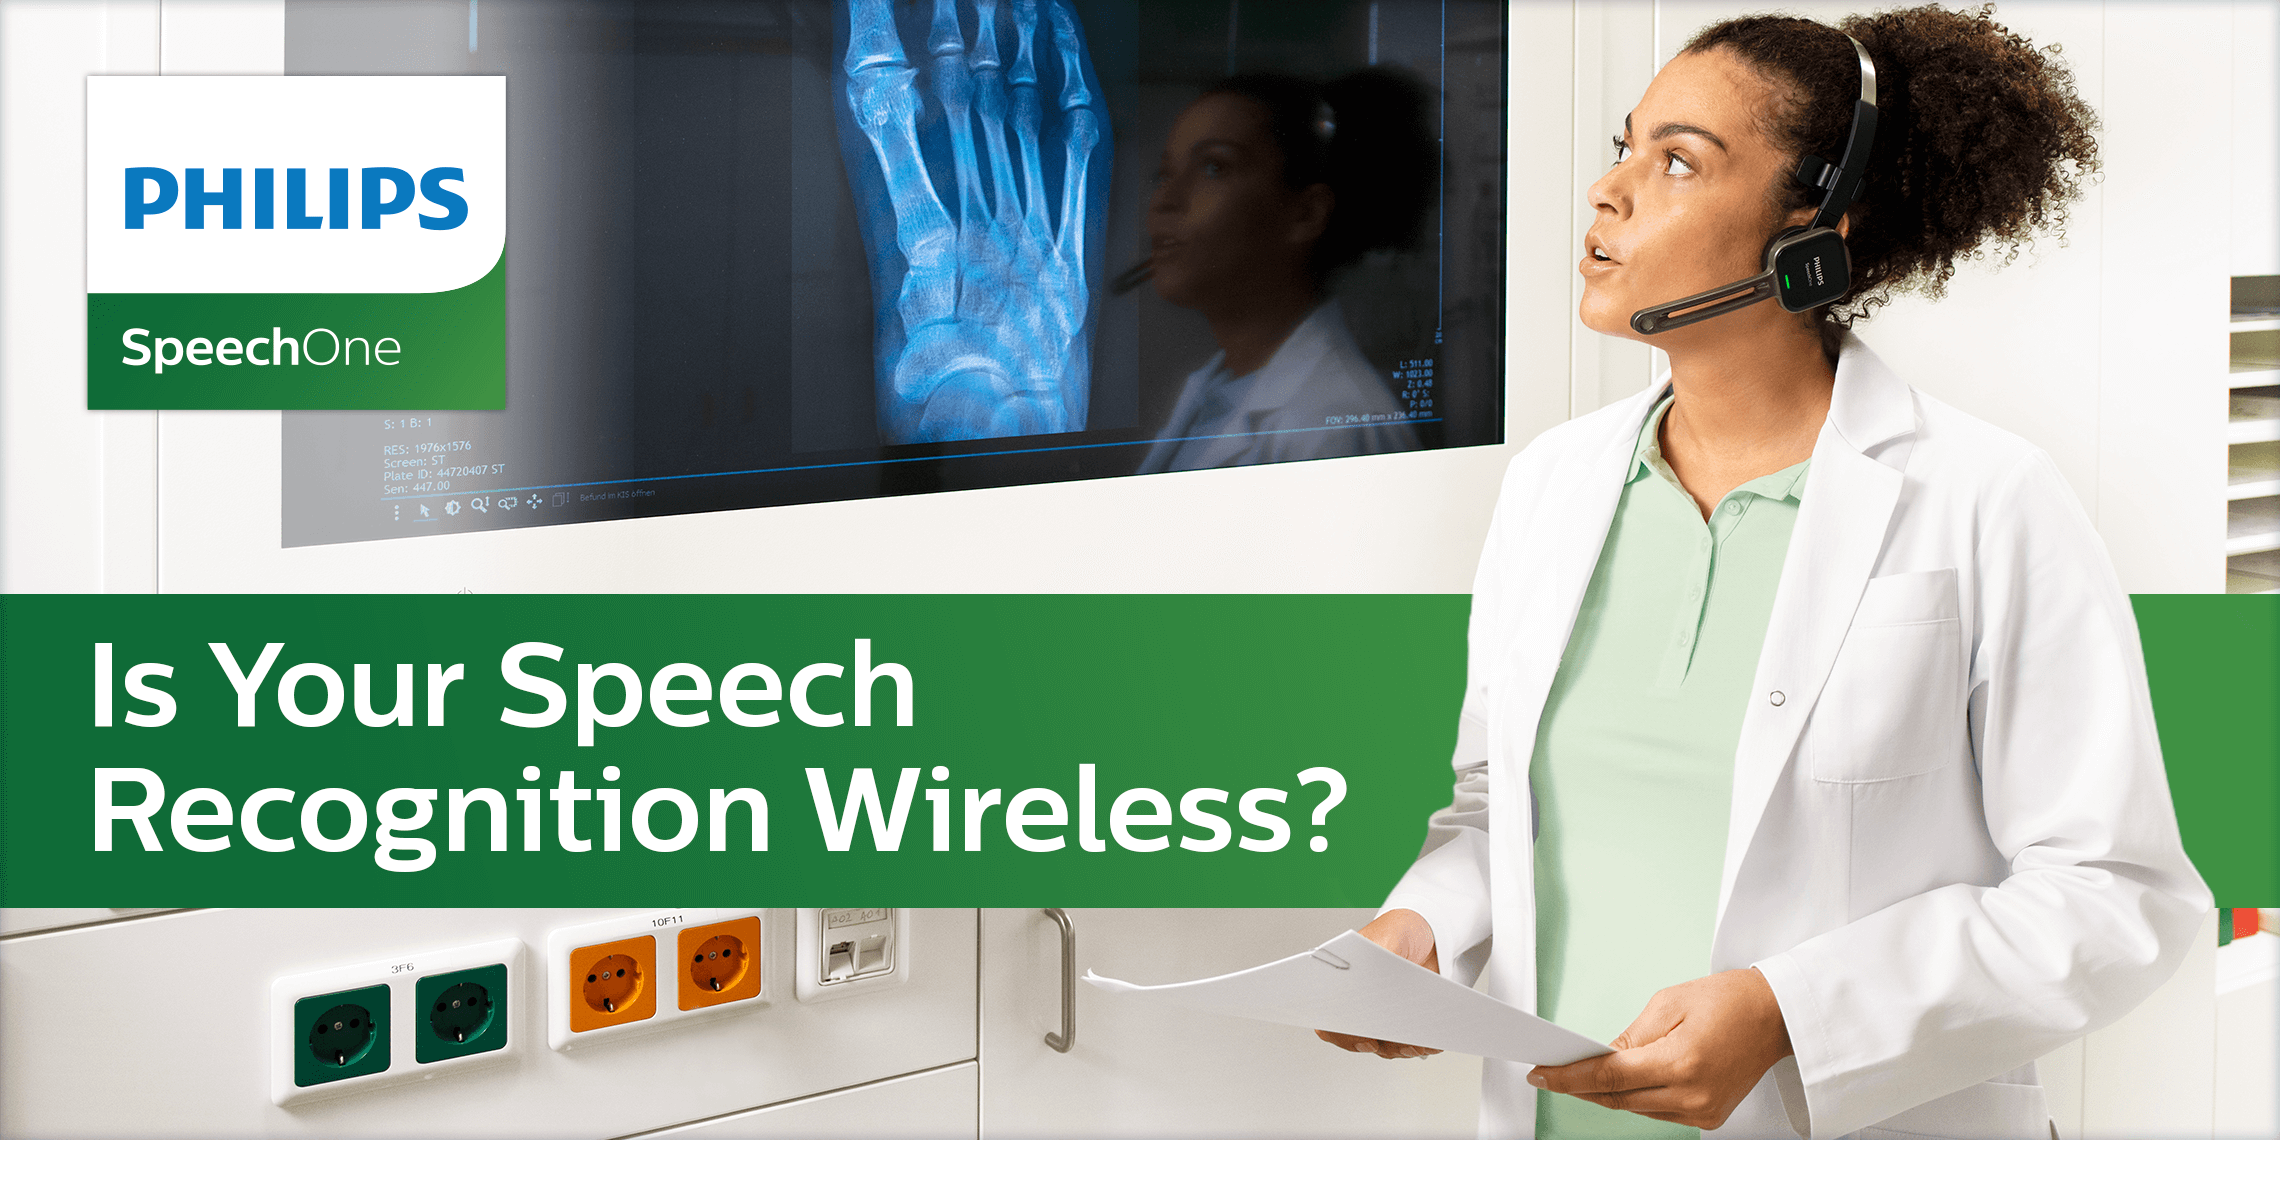 Philips SpeechOne - Is your speech recognition wireless?